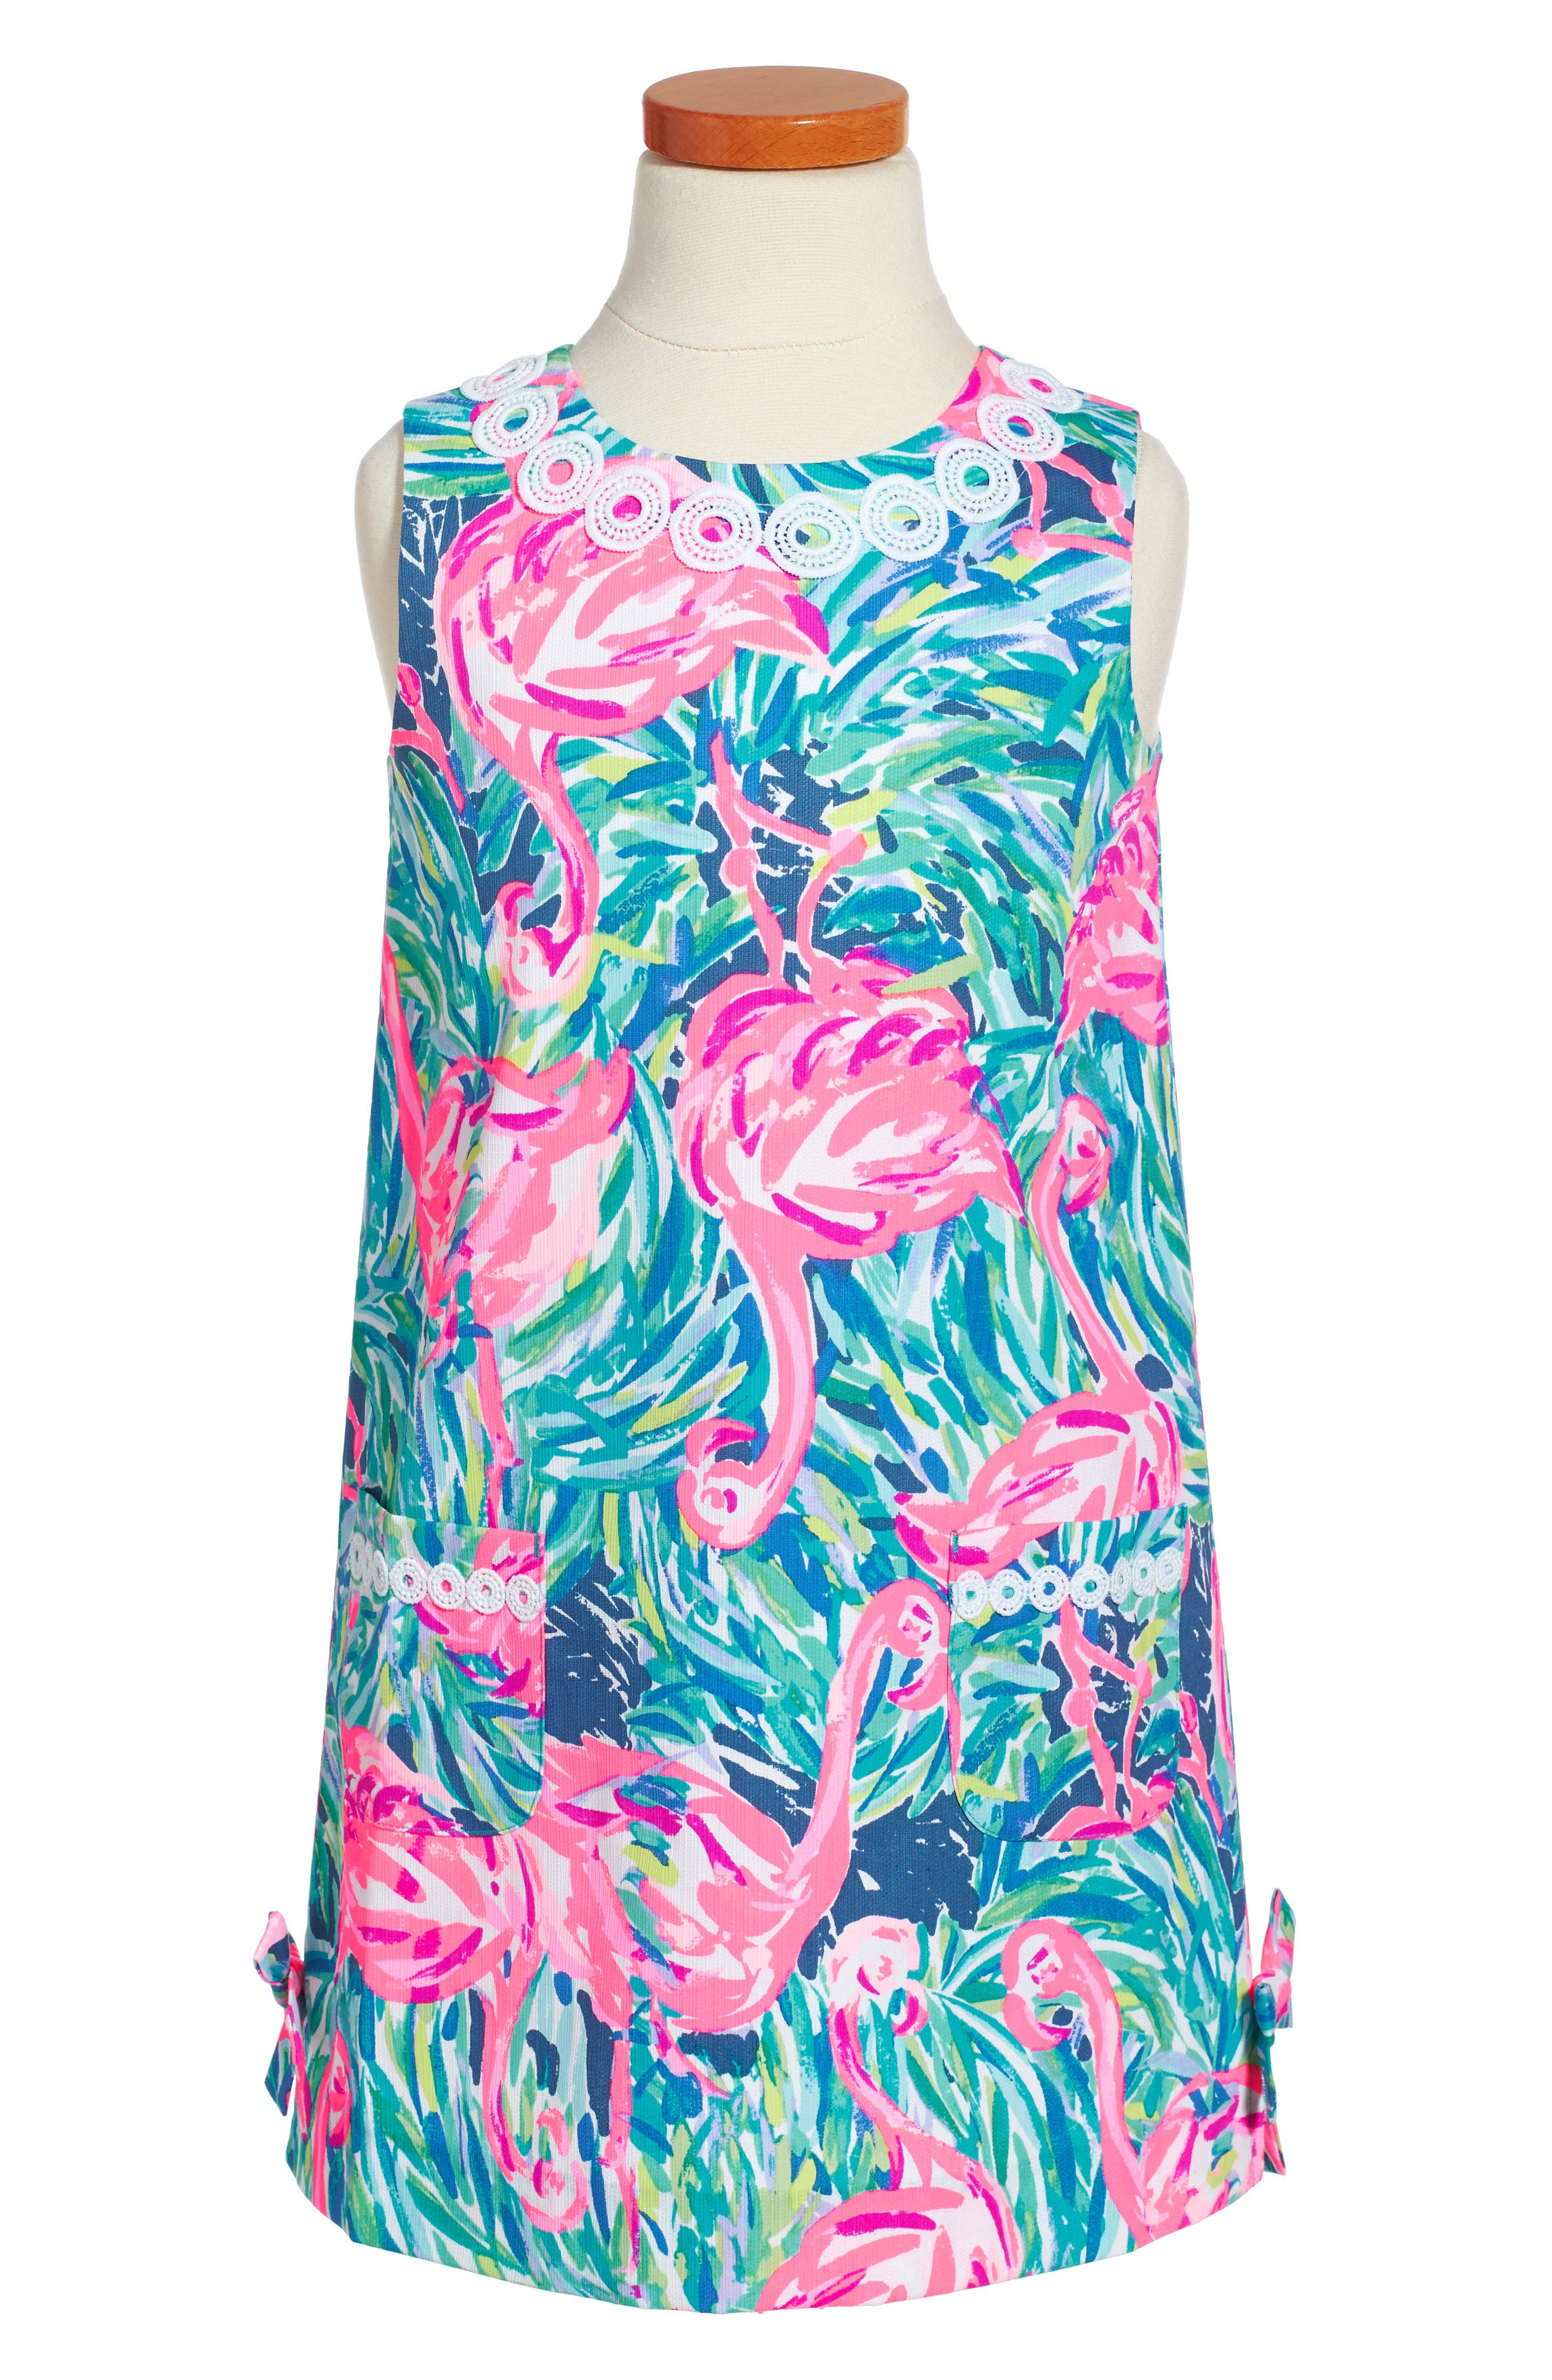 Alternate Image 1 Selected - Lilly Pulitzer® Classic Shift Dress (Toddler Girls, Little Girls & Big Girls)